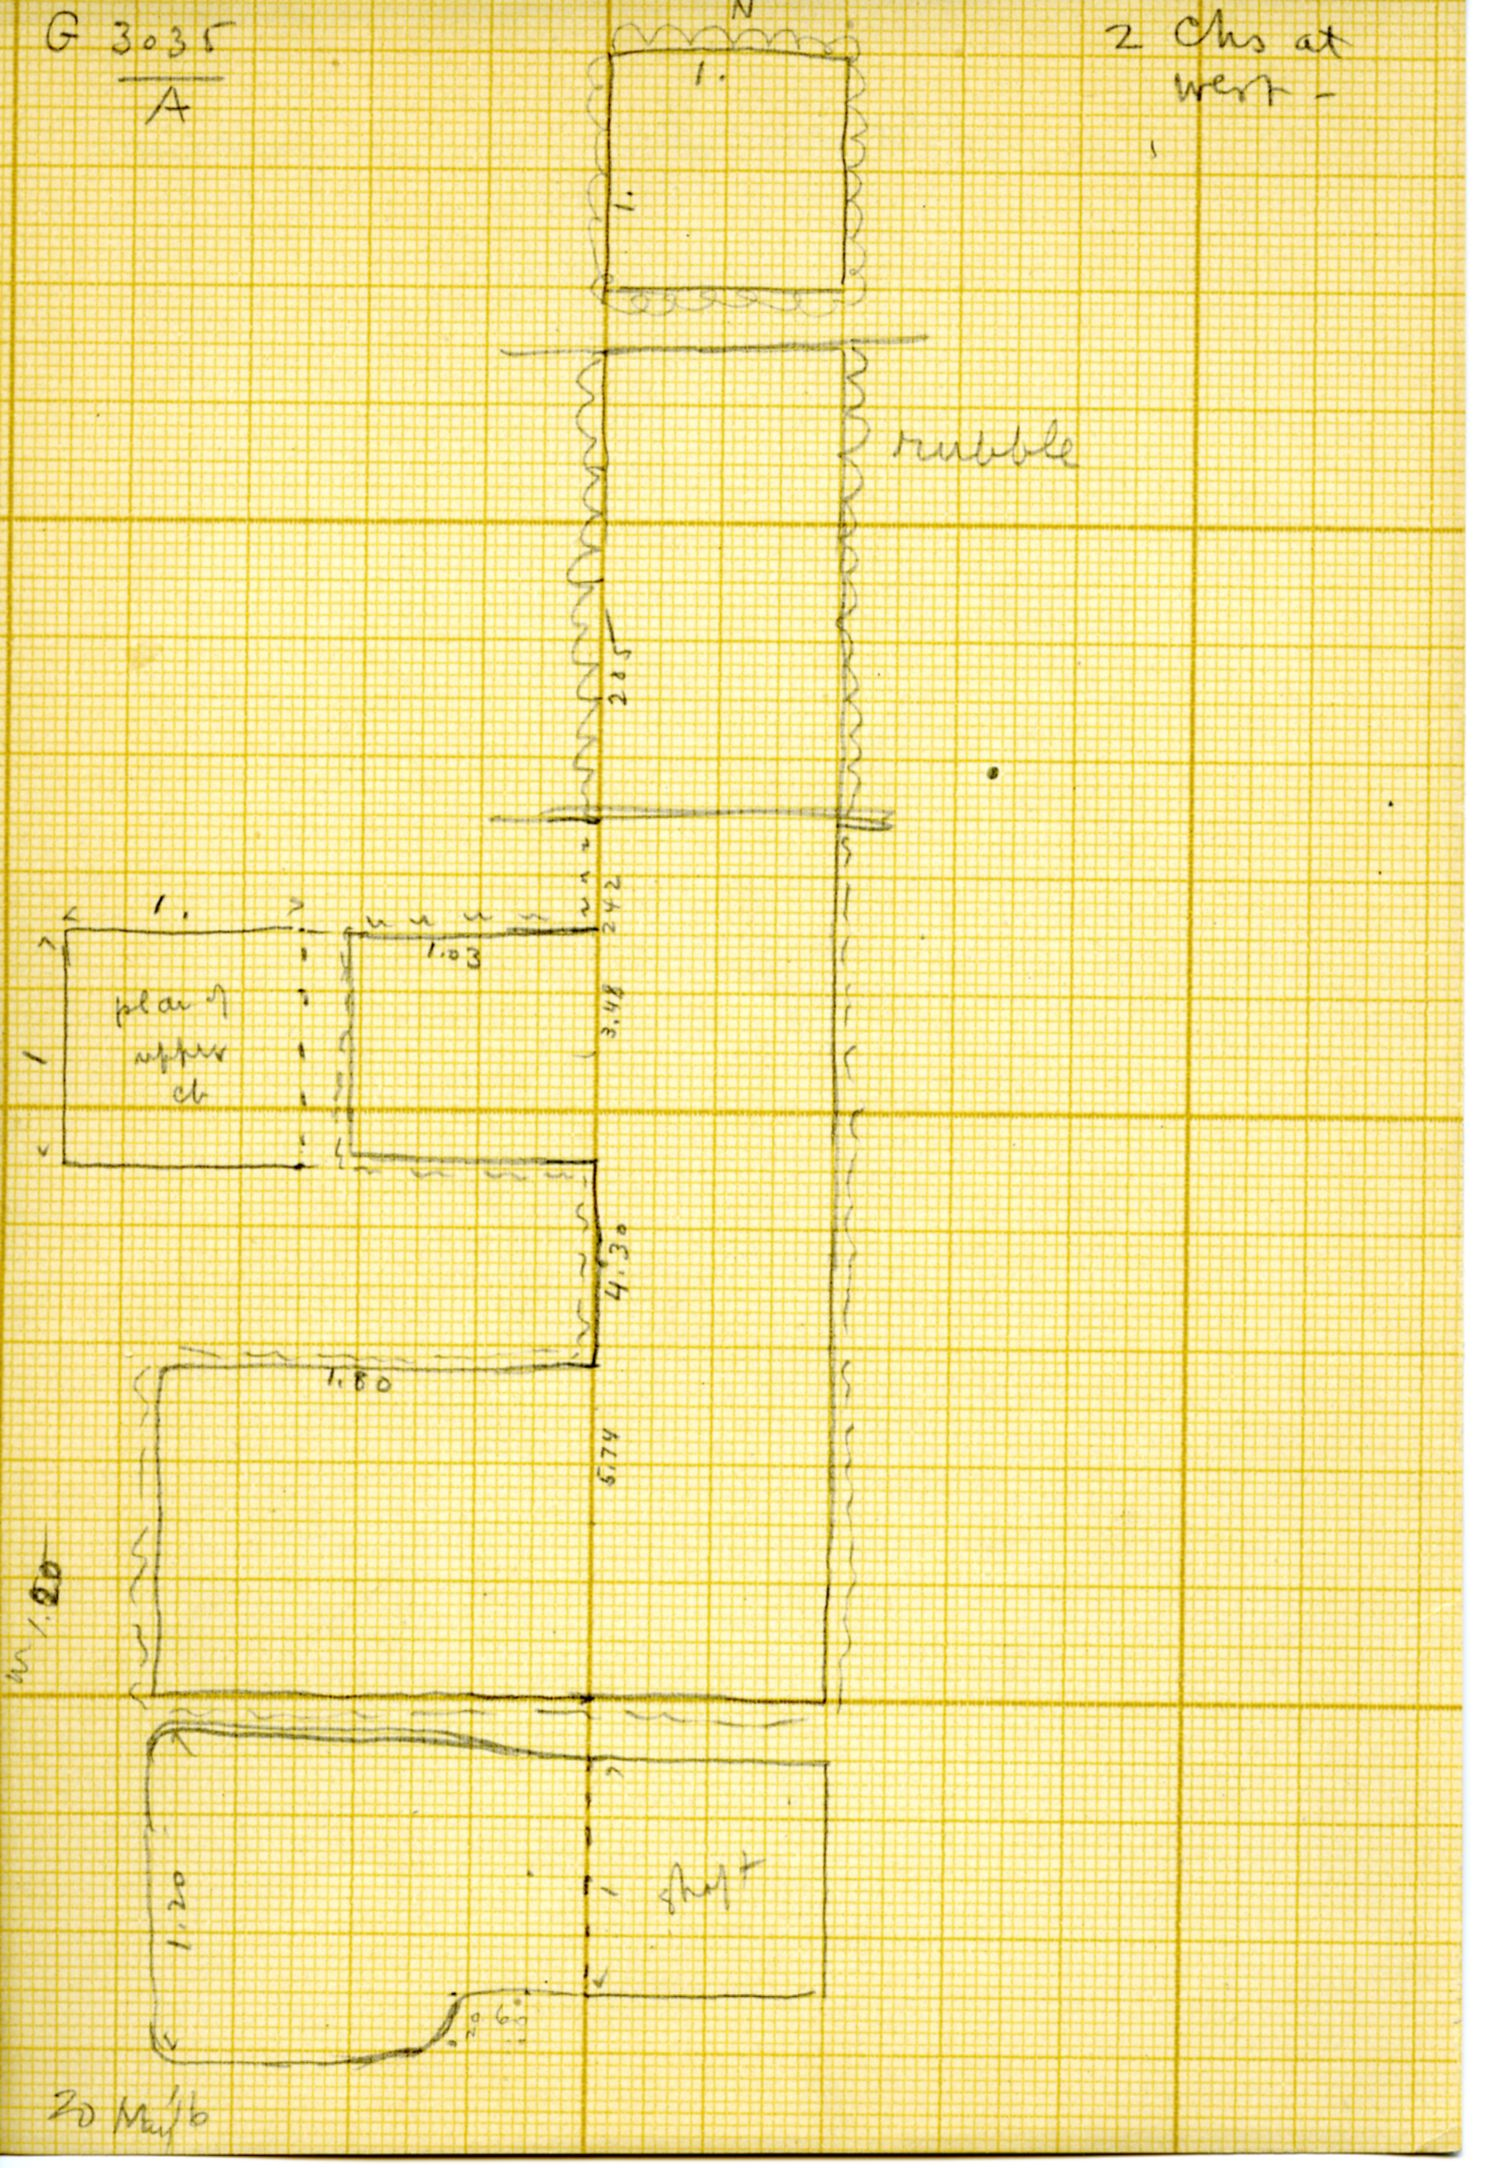 Maps and plans: G 3035, Shaft A